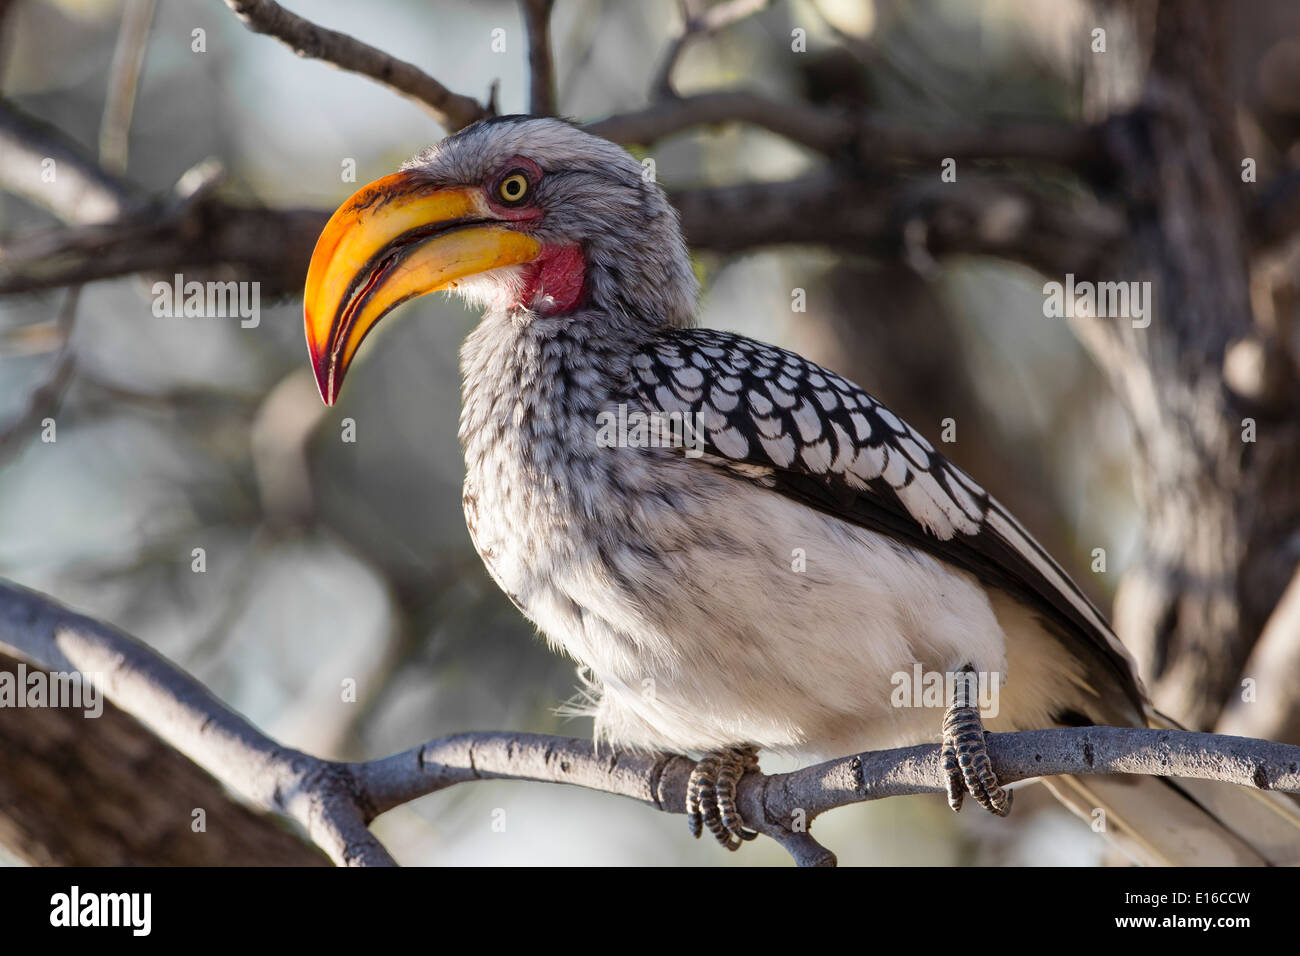 Le sud de l'Yellow-Billed Hornbill Photo Stock